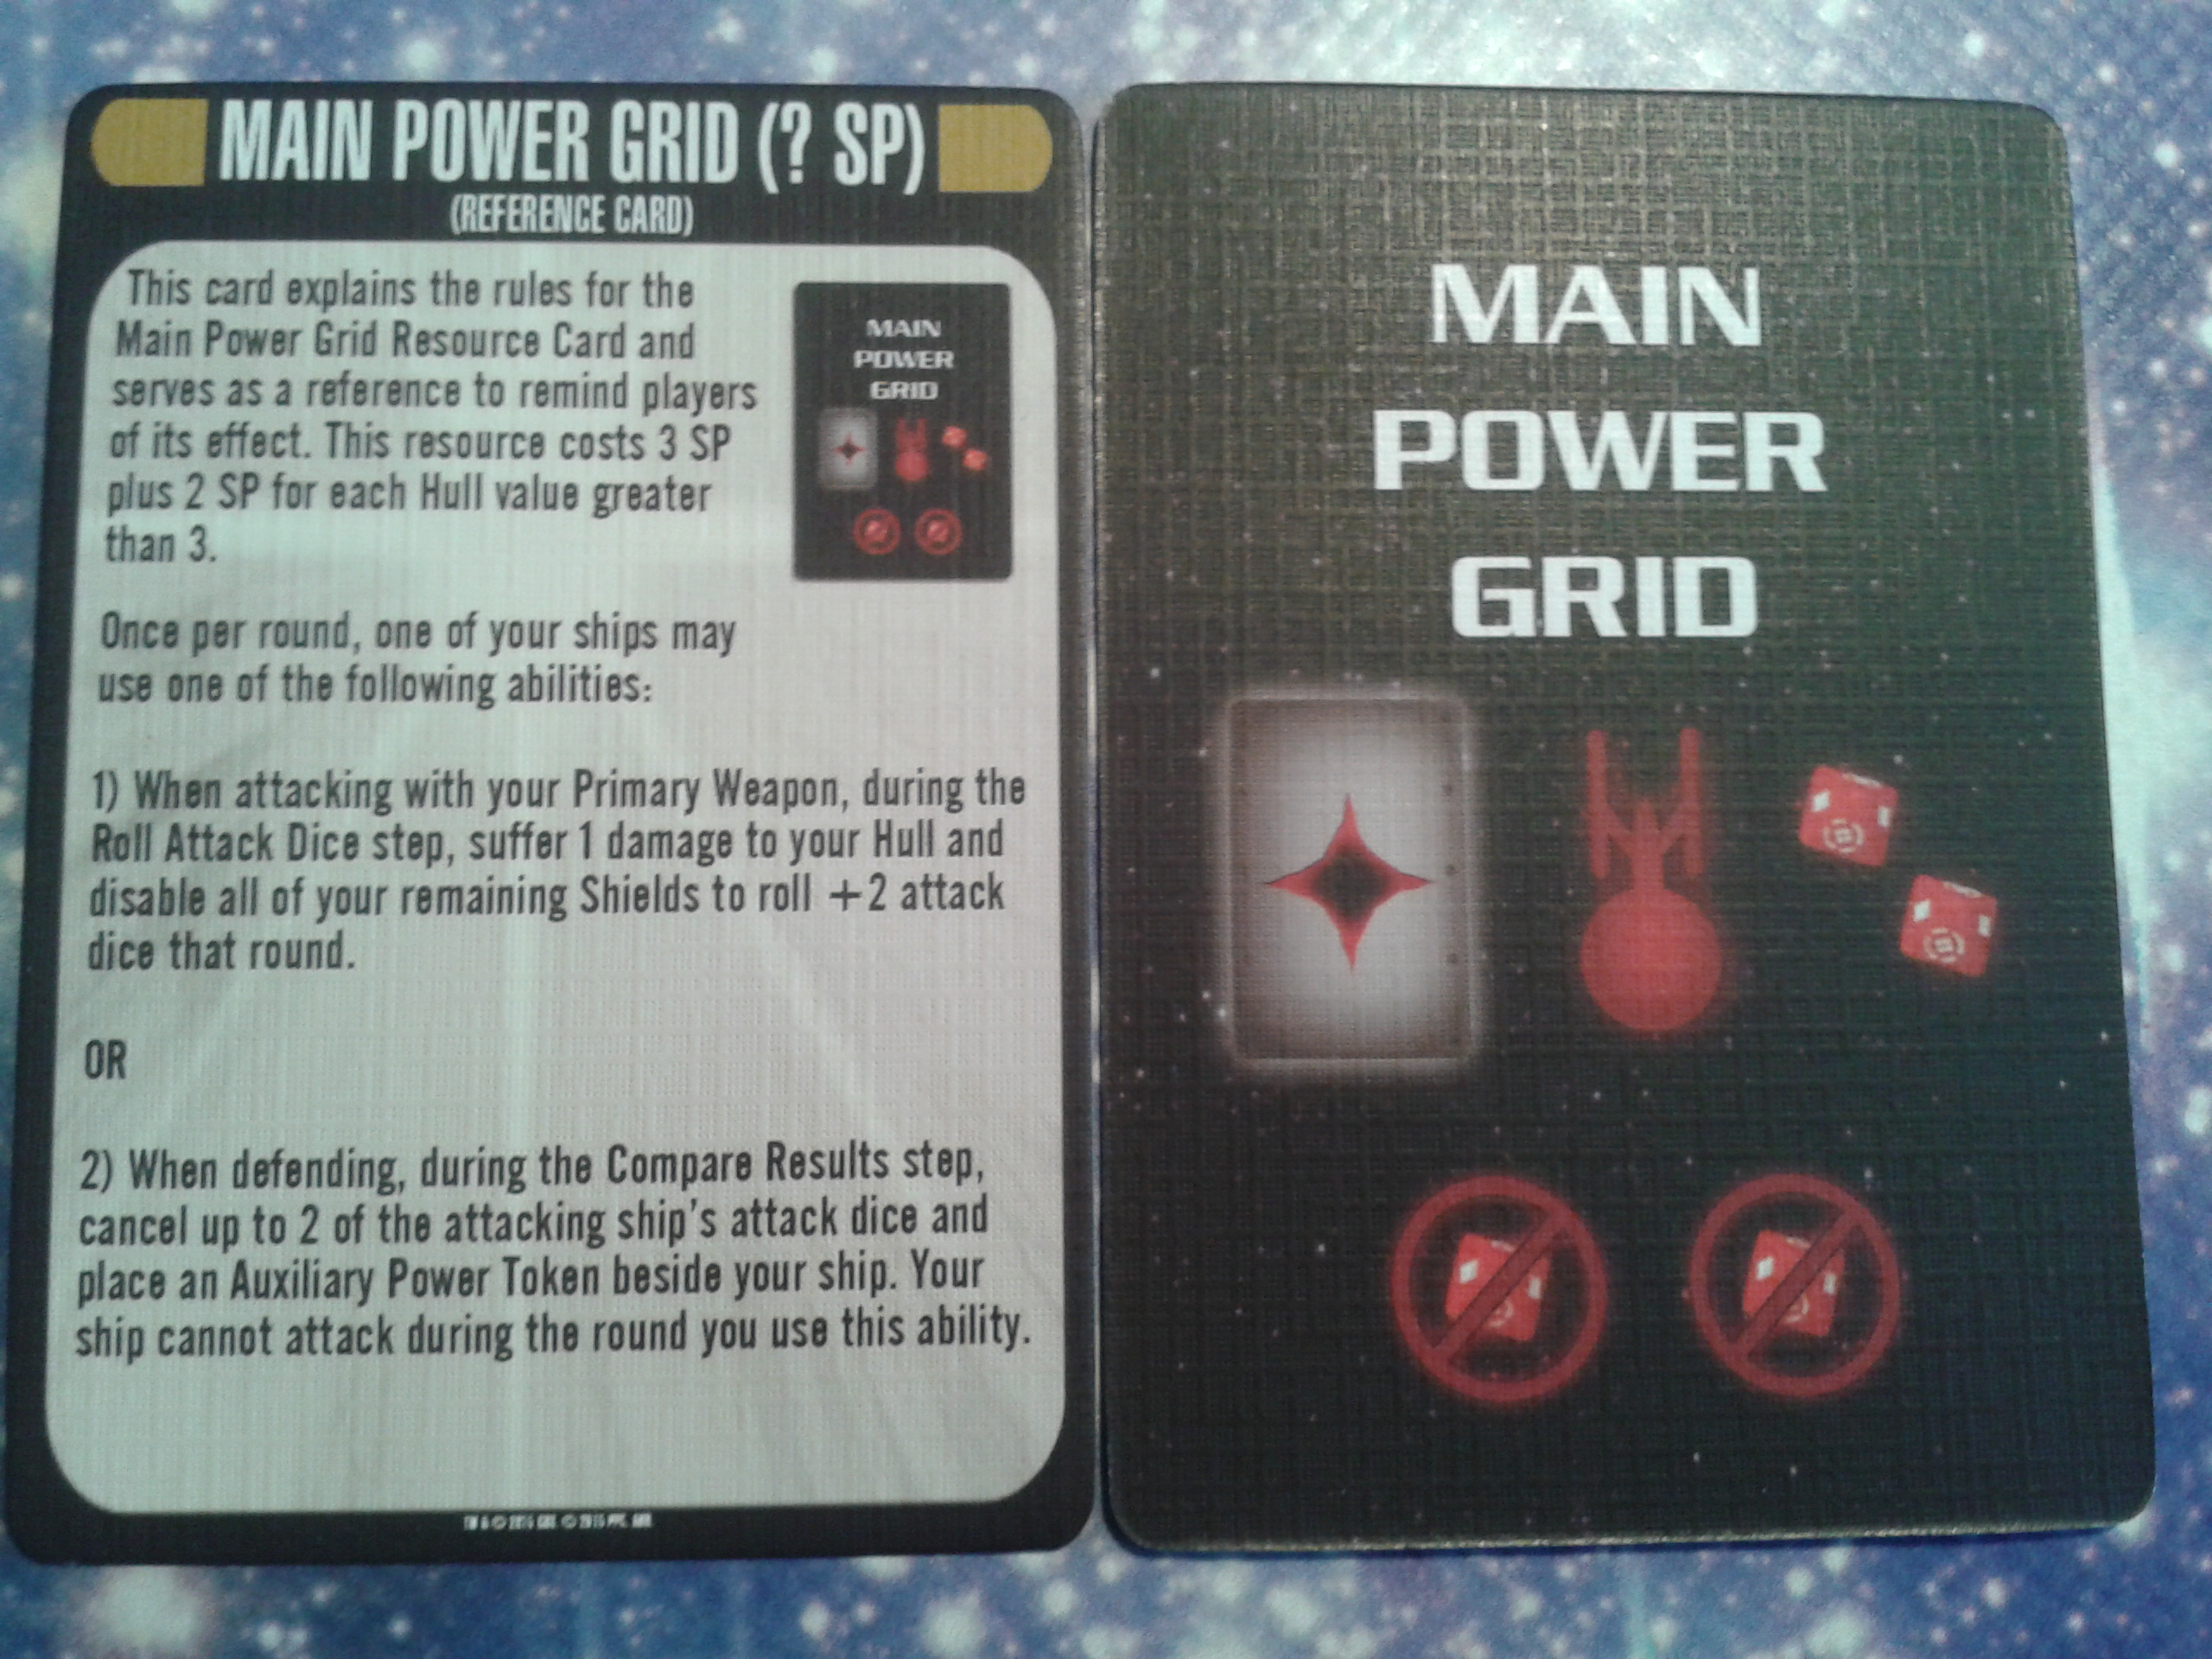 [Biete] Main Power Grid Ressource (TCW 3) 20160410_130740